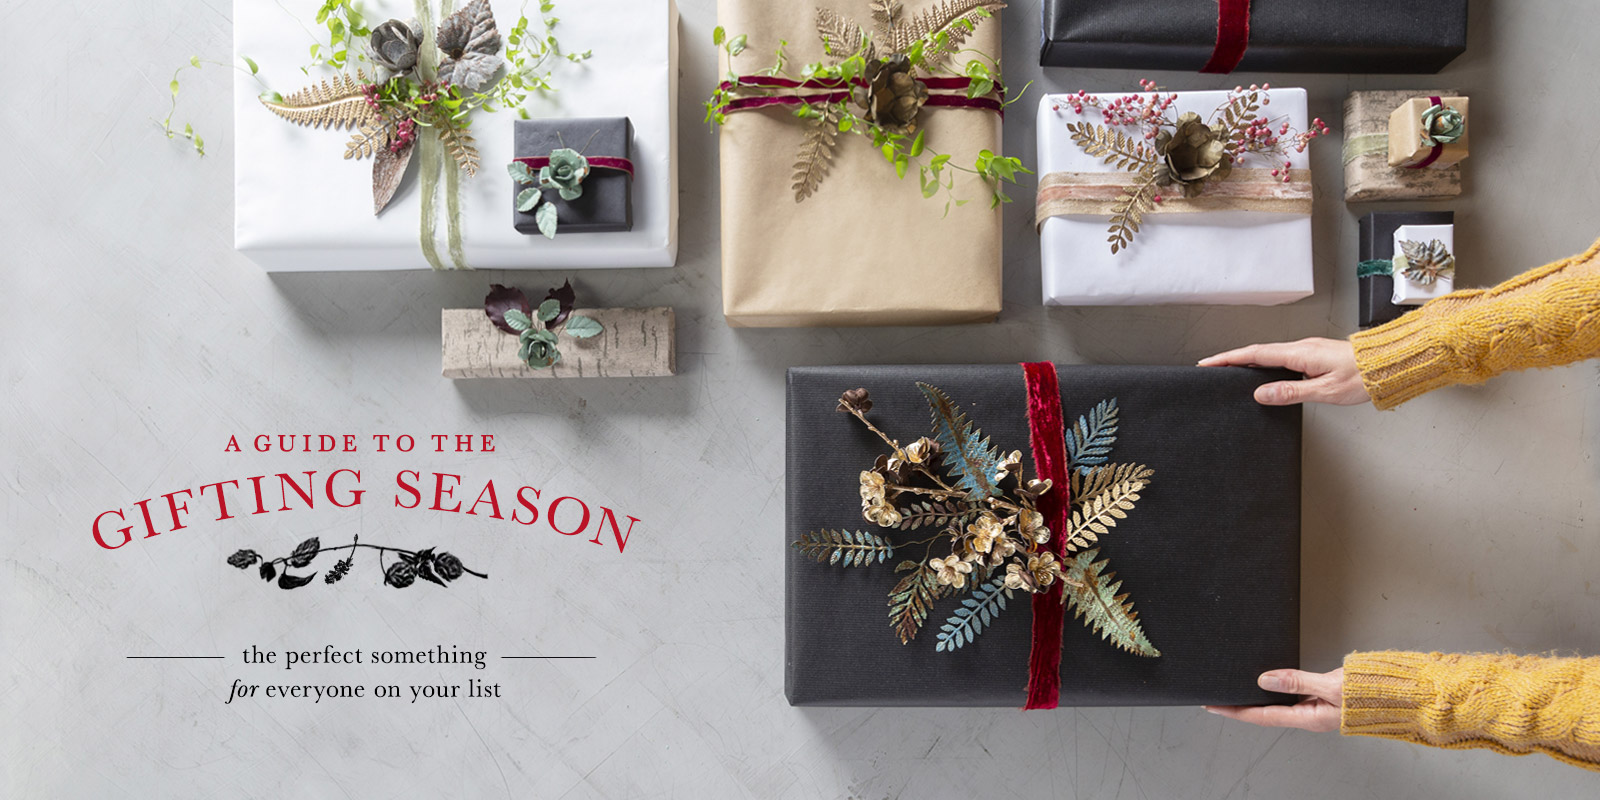 A Guide to the Gifting Season | the perfect something for everyone on your list